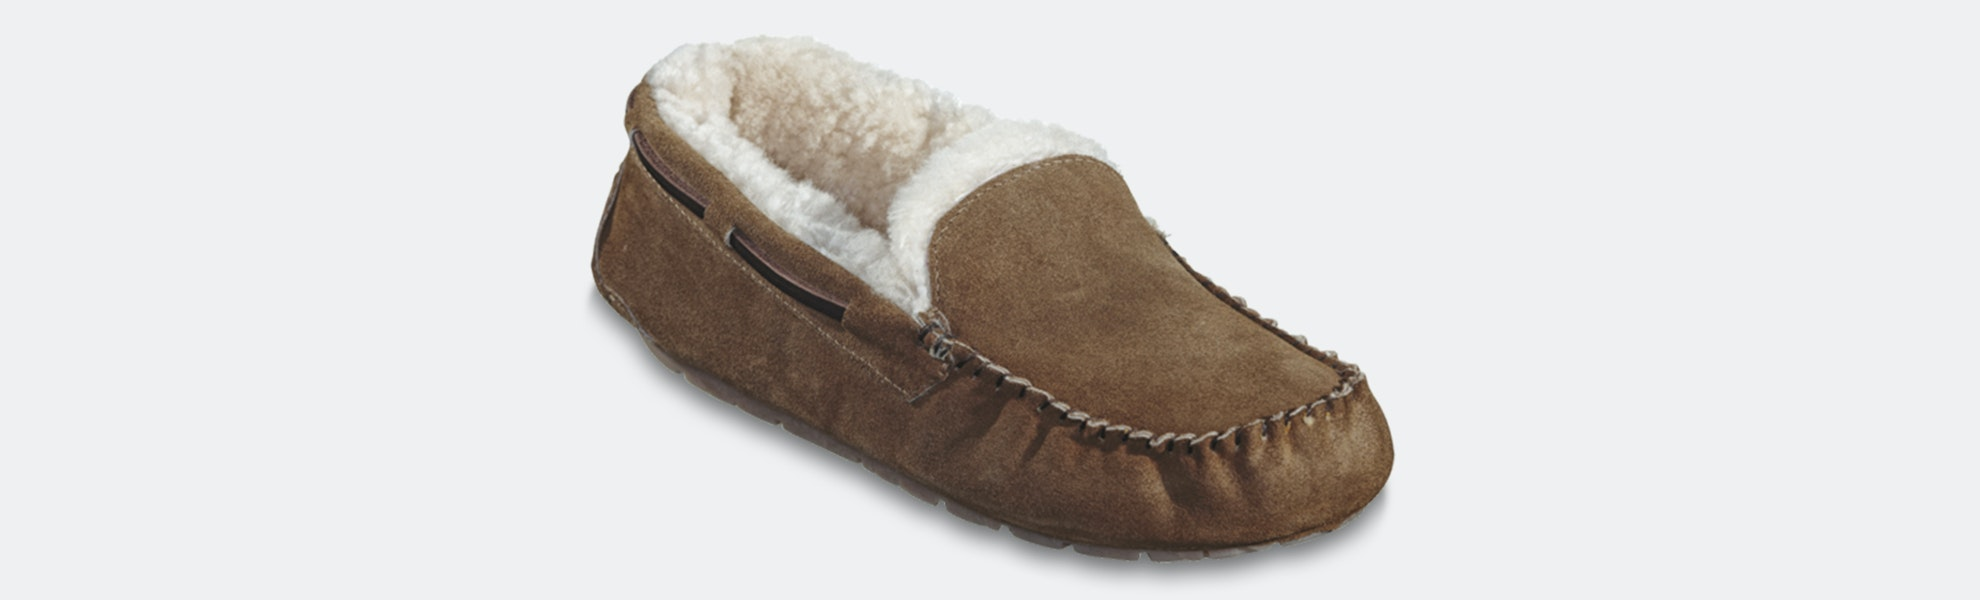 Shepherd of Sweden Steffo Slipper